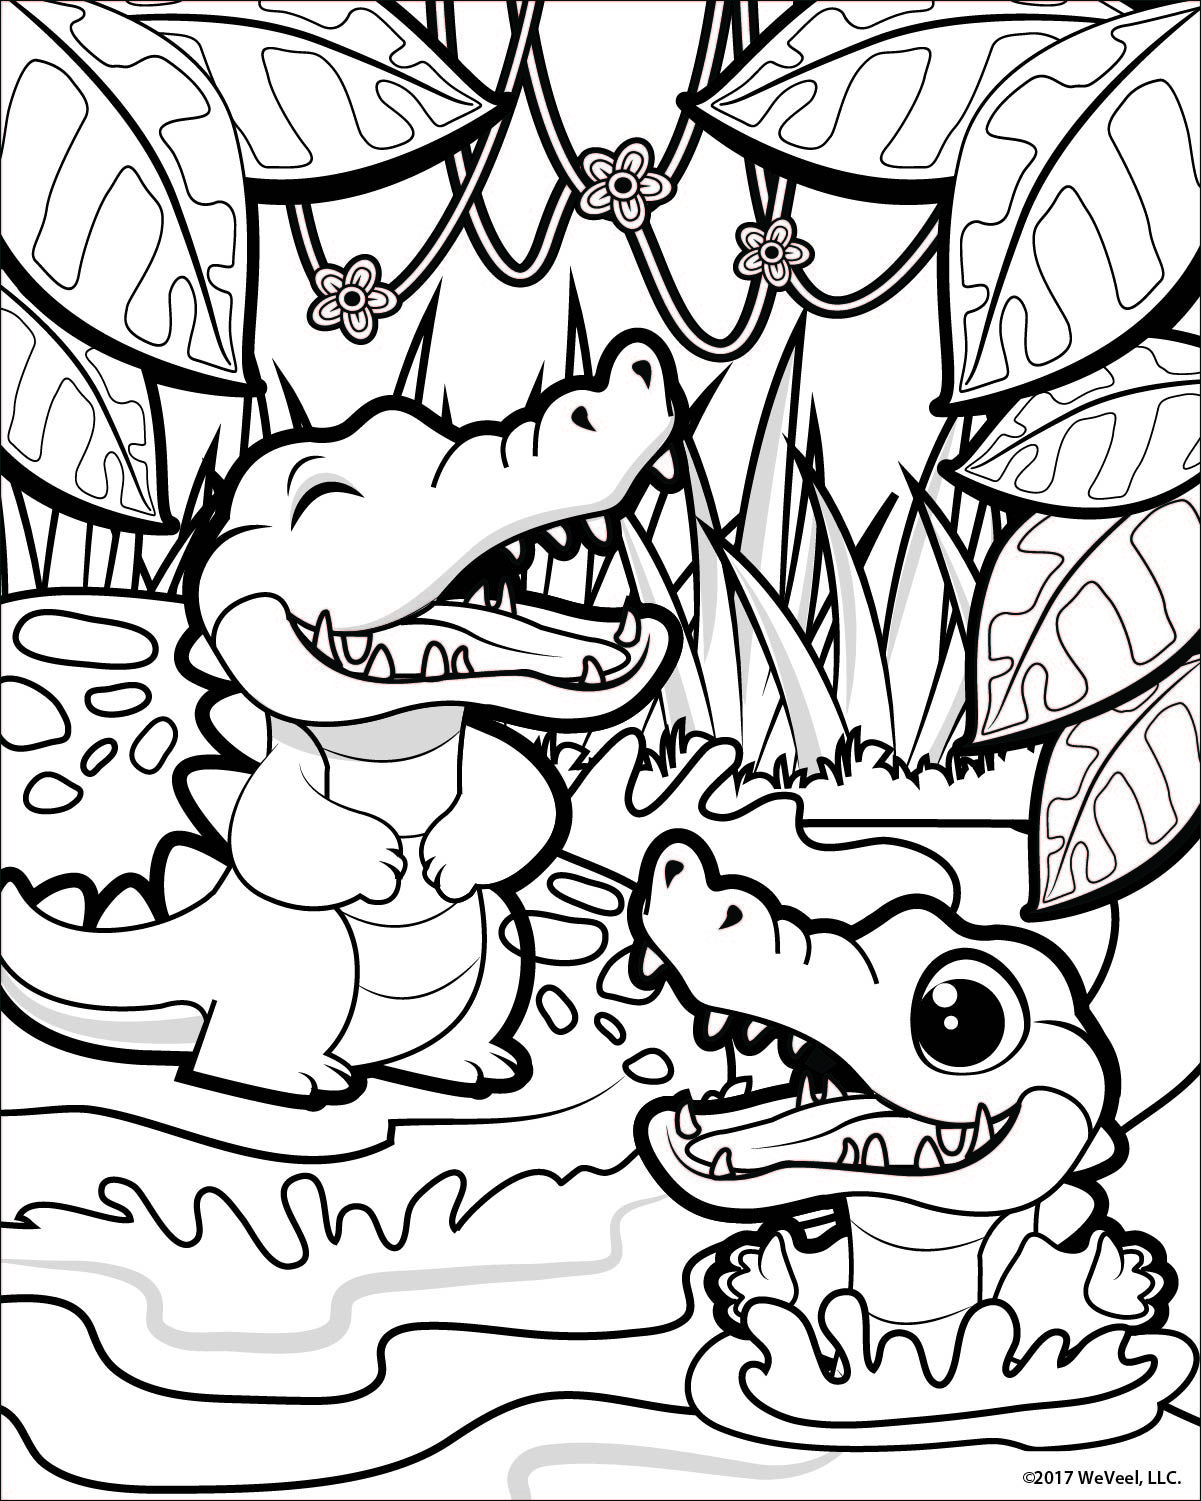 Coloring Pages Jungle Jungle Coloring Pages Cute Coloring Pages Zoo Coloring Pages